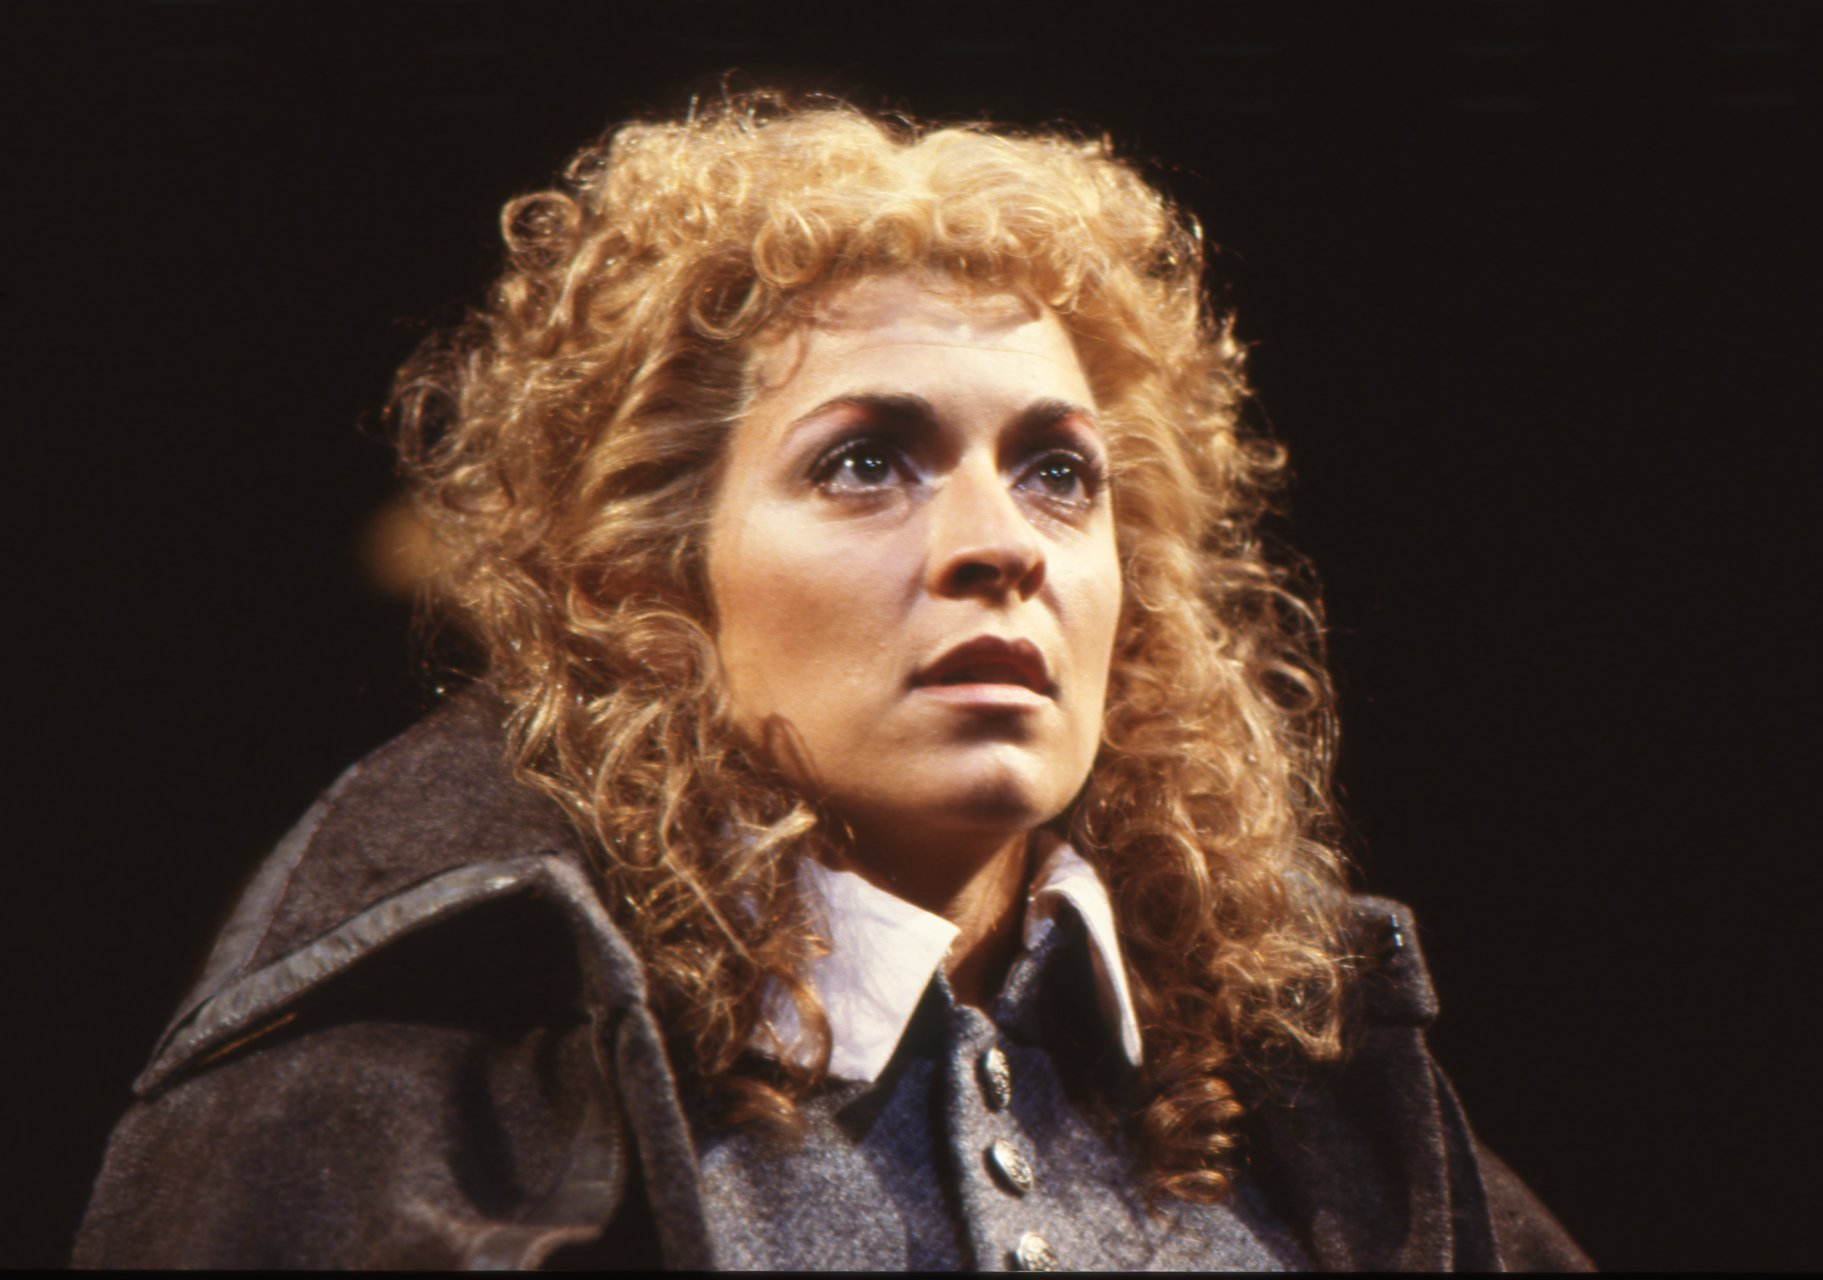 Suzanne Bertish as Desdemona.